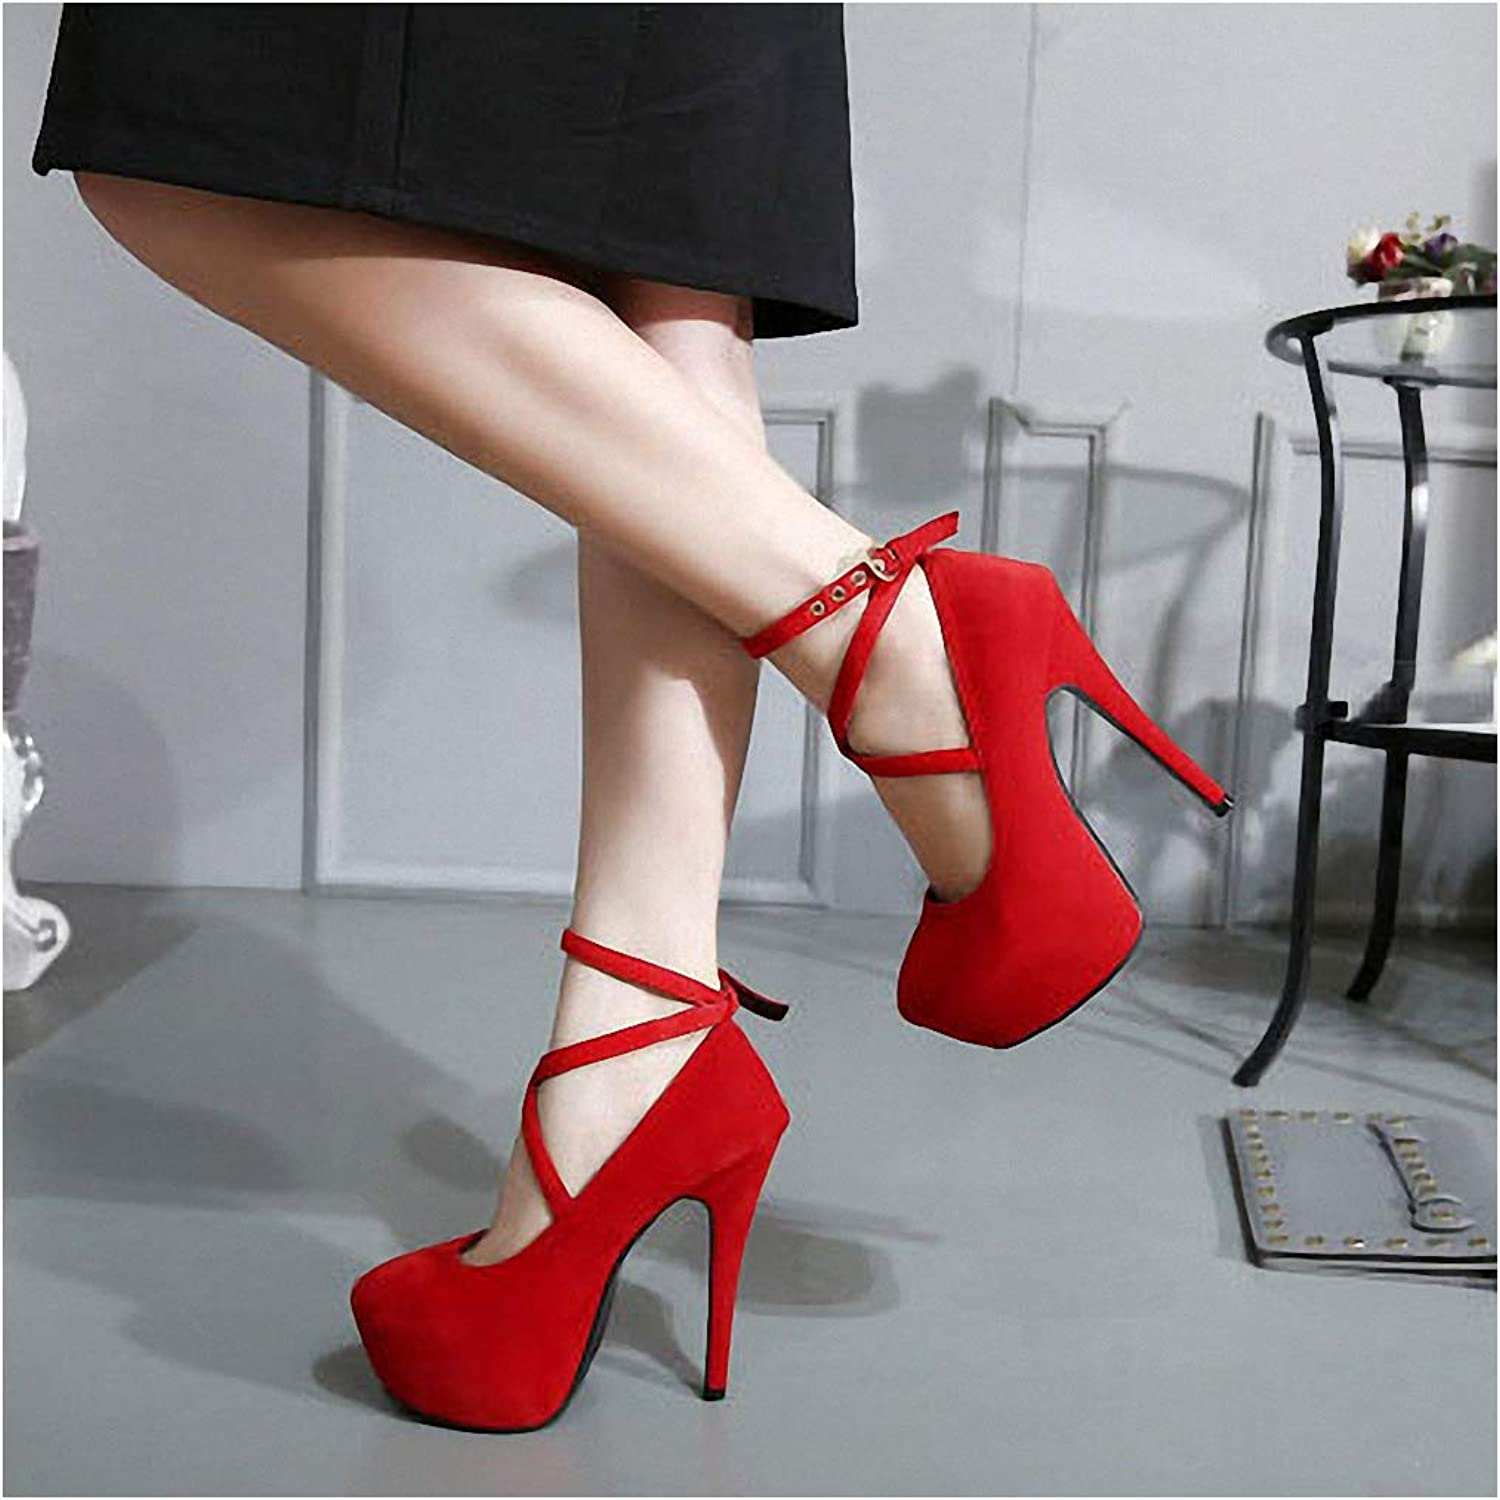 Tebapi Womens High-Heeled Pumps shoes Sexy Stiletto Women's shoes 16cm High Heels Fashion Super High Heel shoes Waterproof Platform Single shoes